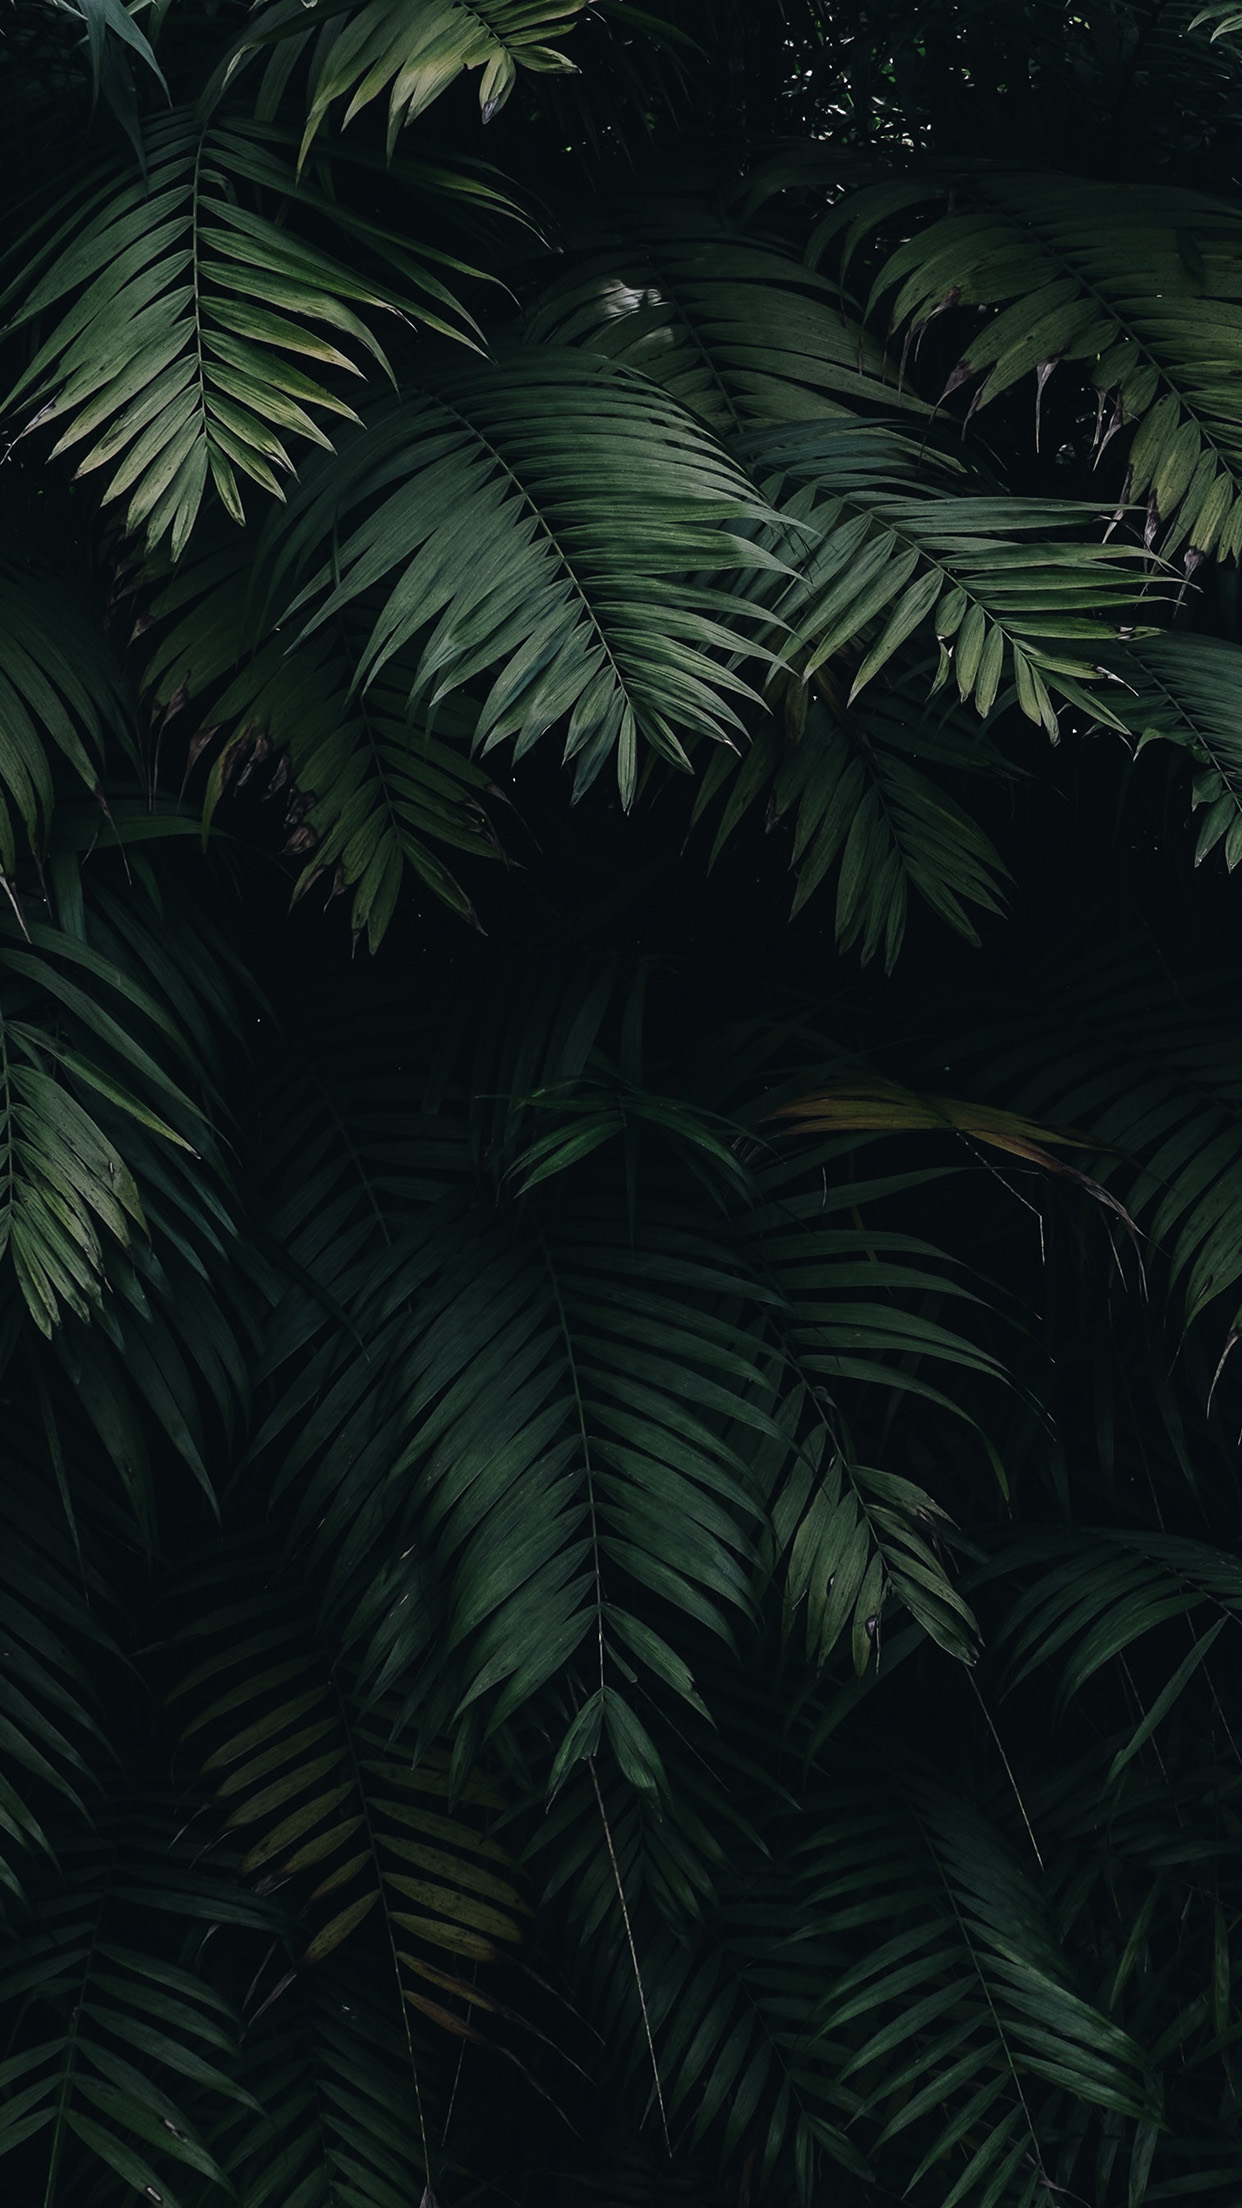 iPhone21papers.com   iPhone 21 wallpaper   oc21 summer tree leaf ...